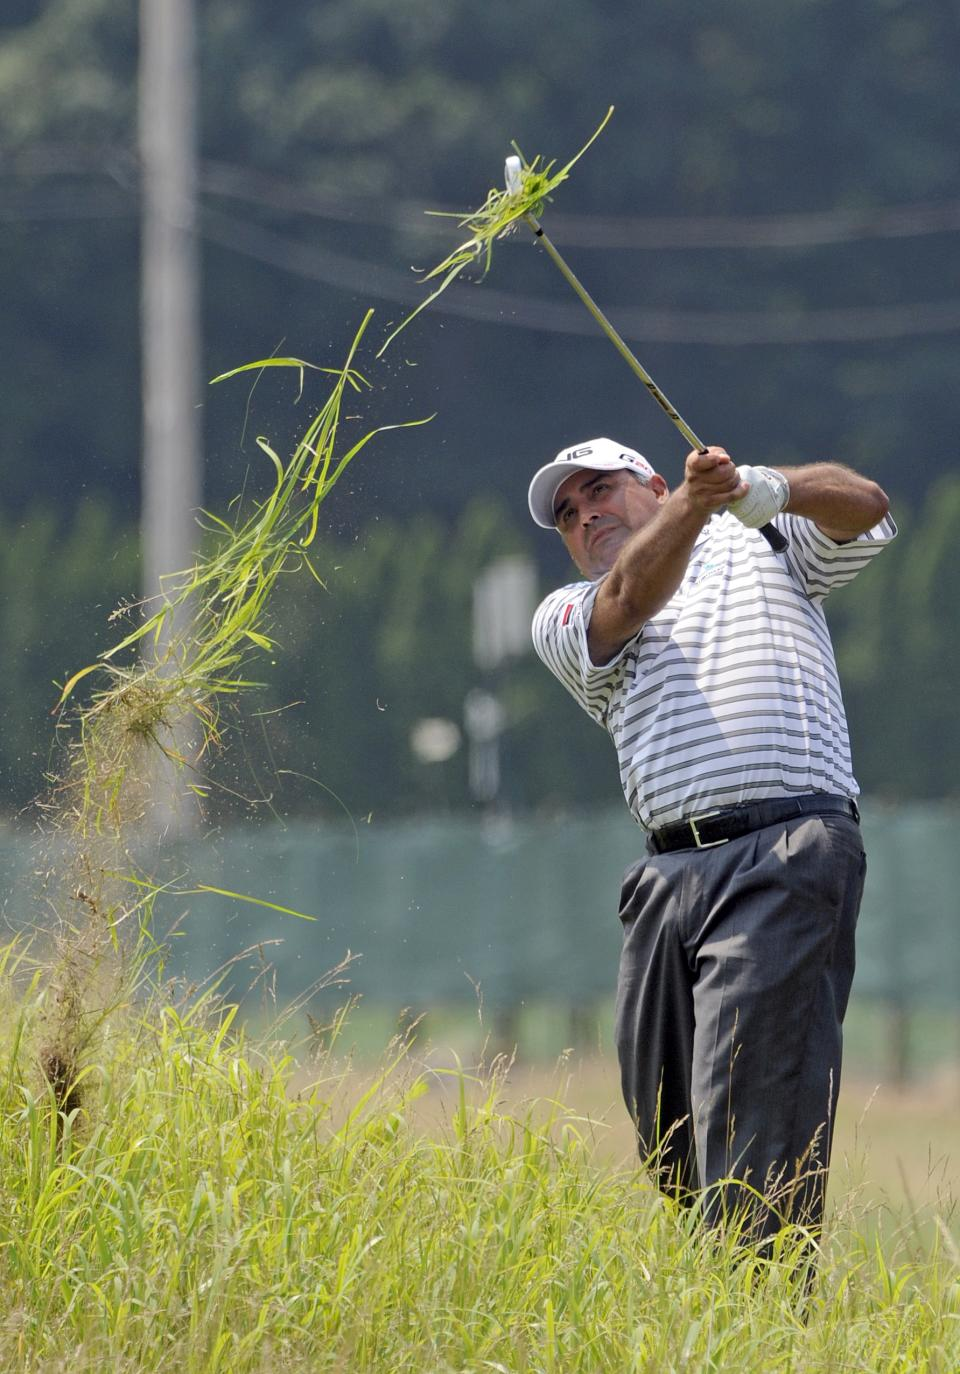 Angel Cabrera, of Argentina,  hits out of the deep rough on the seventh hole during the second round of the Travelers Championship golf tournament in Cromwell, Conn., Friday, June 22, 2012. (AP Photo/Fred Beckham)